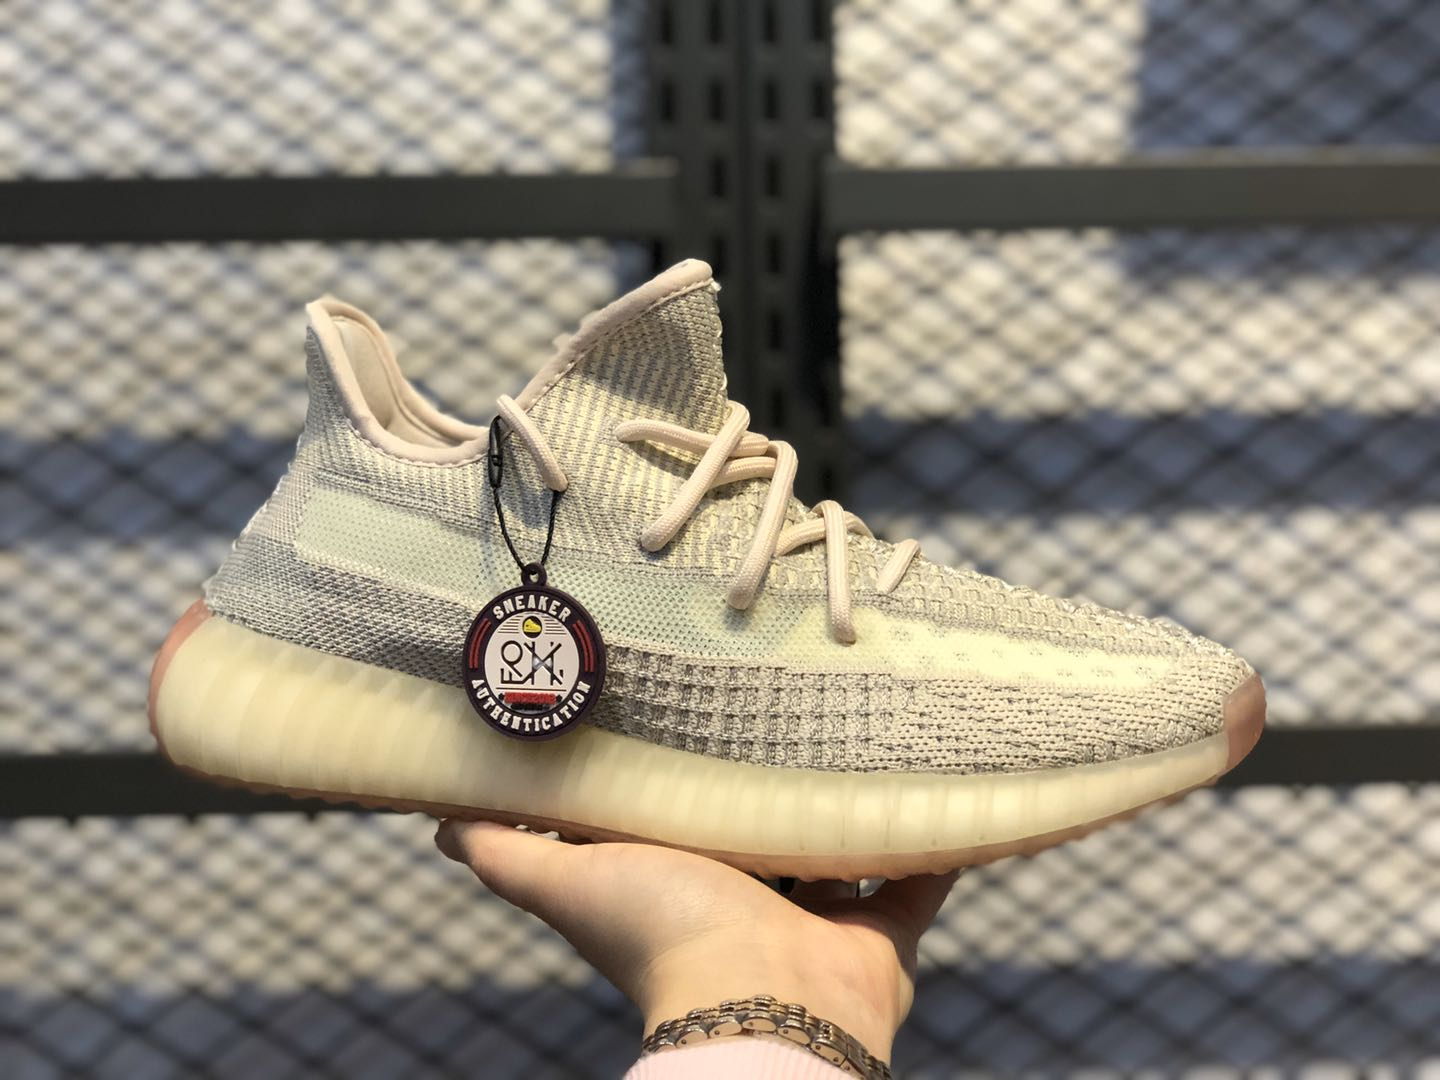 Adidas Yeezy Boost 350 V2 Citrin Reflective For Buy FW5318